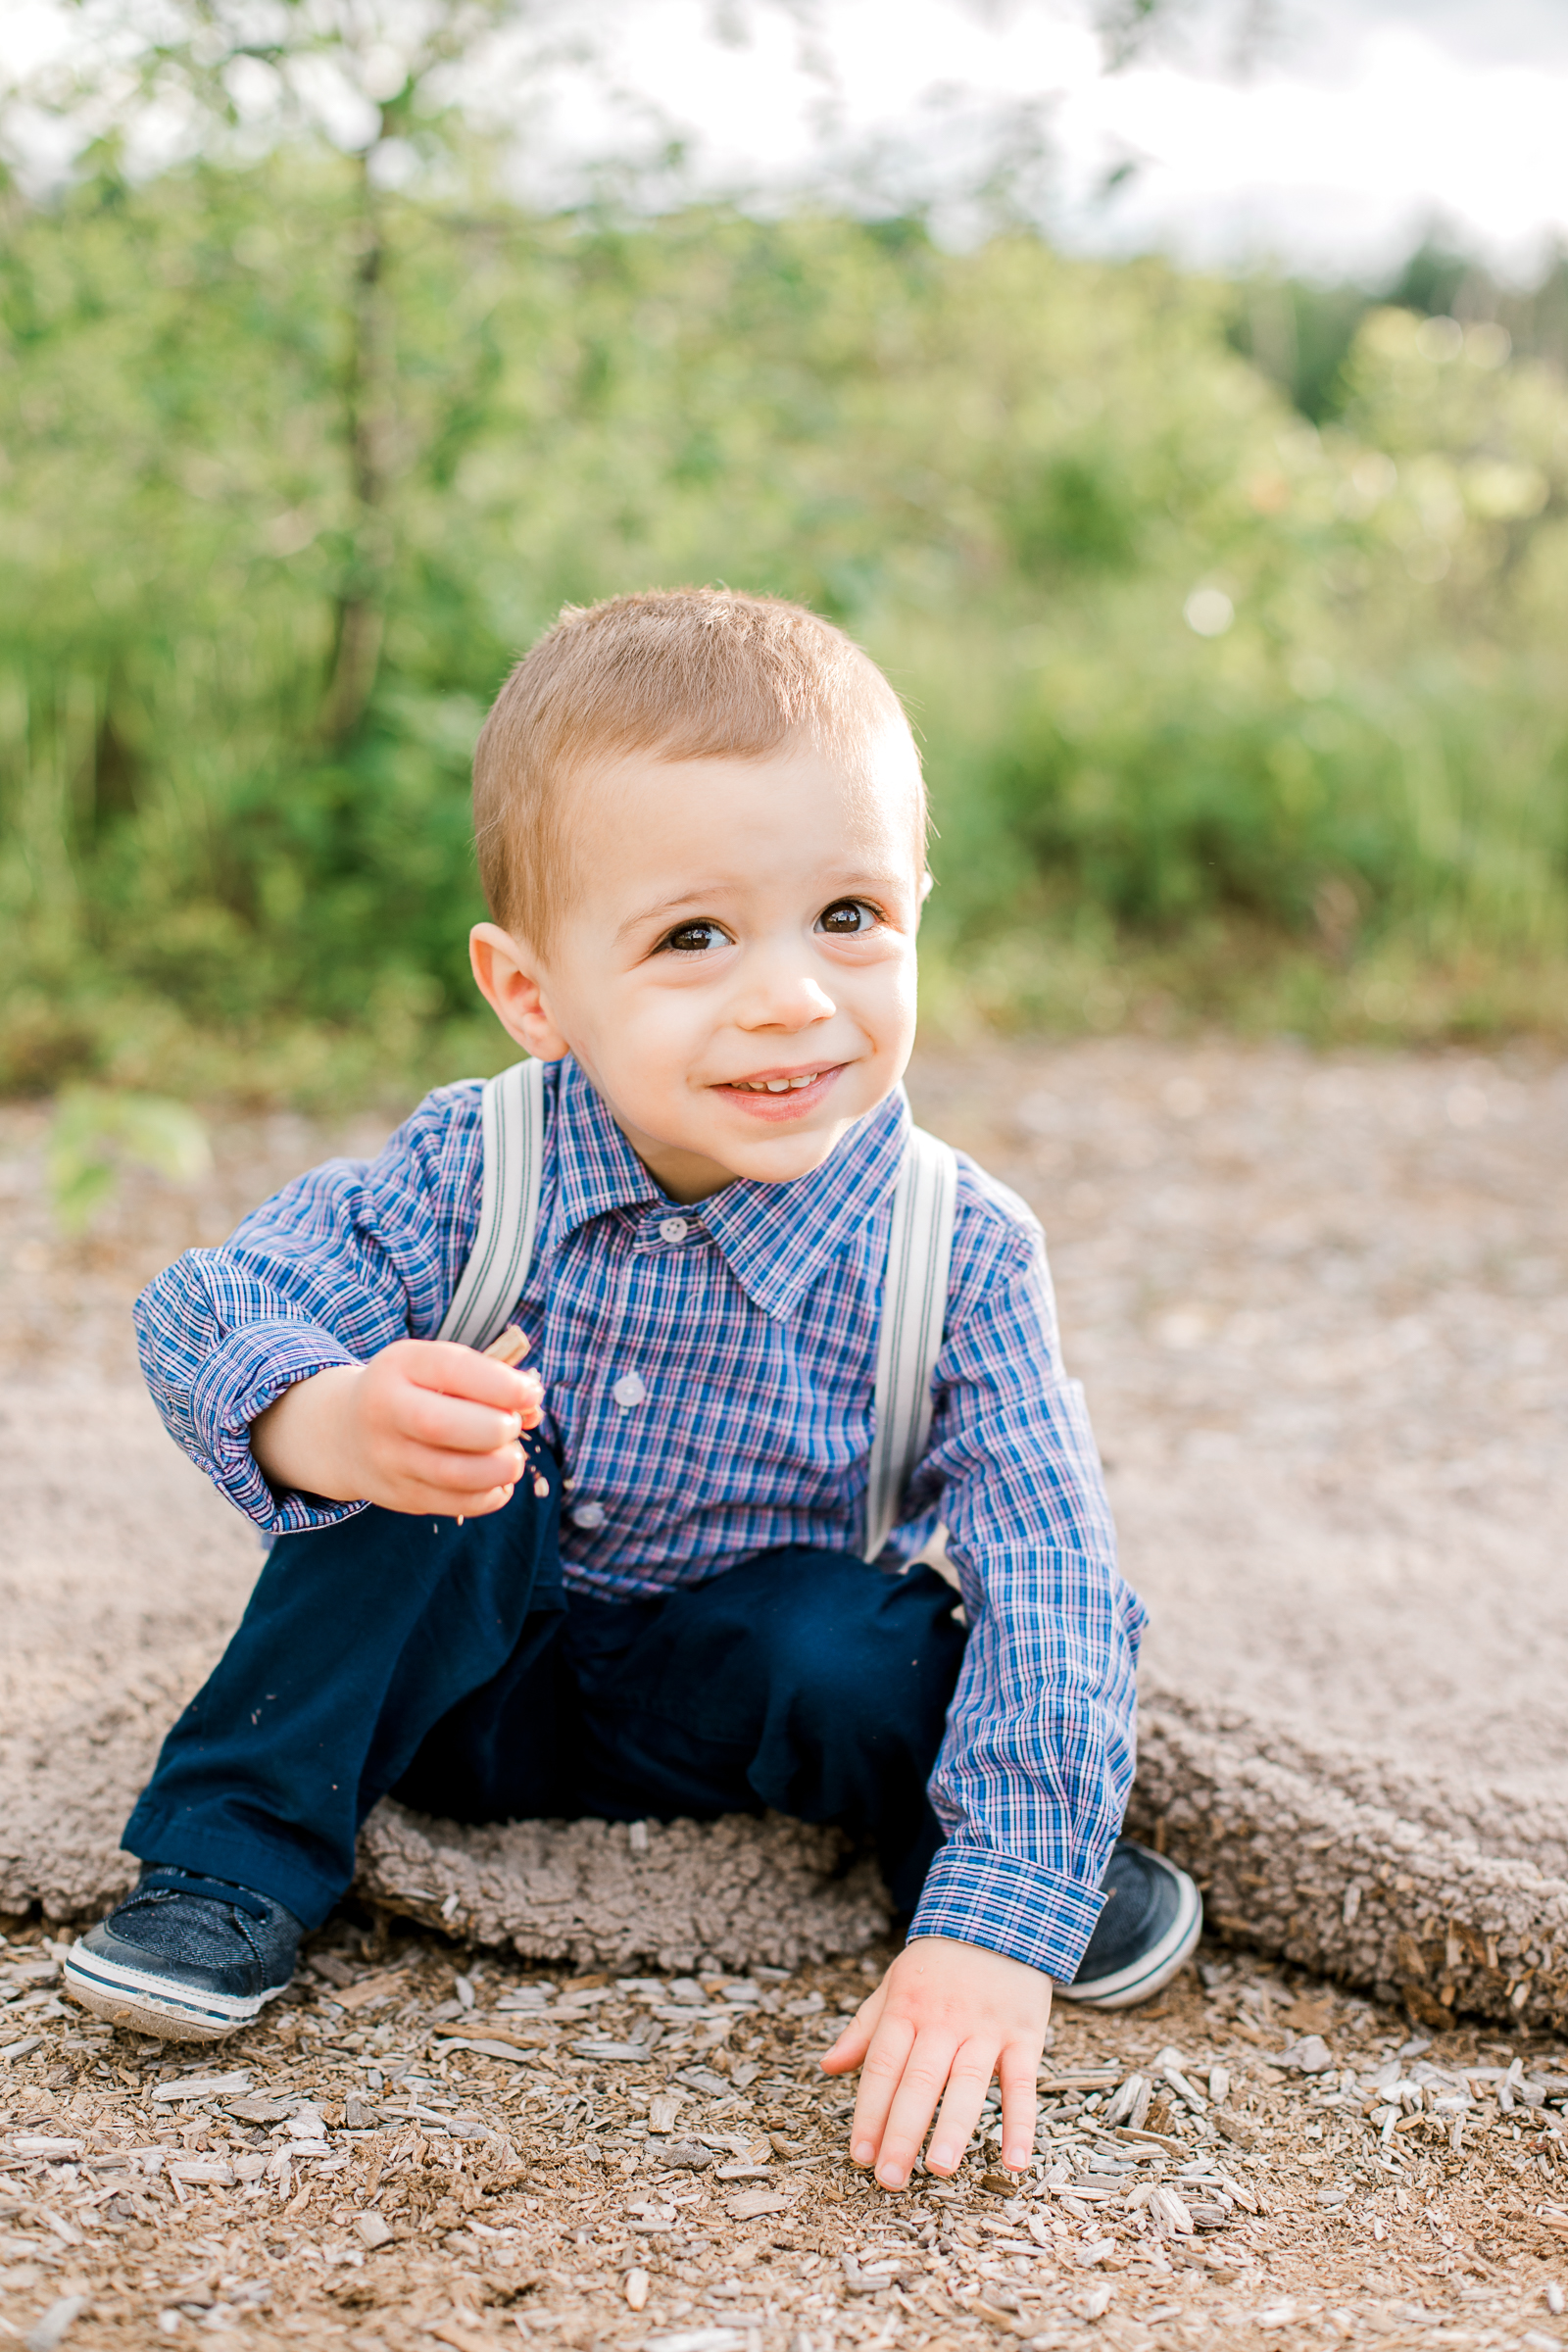 Franklin_cranberry_bog_family_photos_erica_pezente_photography-32.jpg